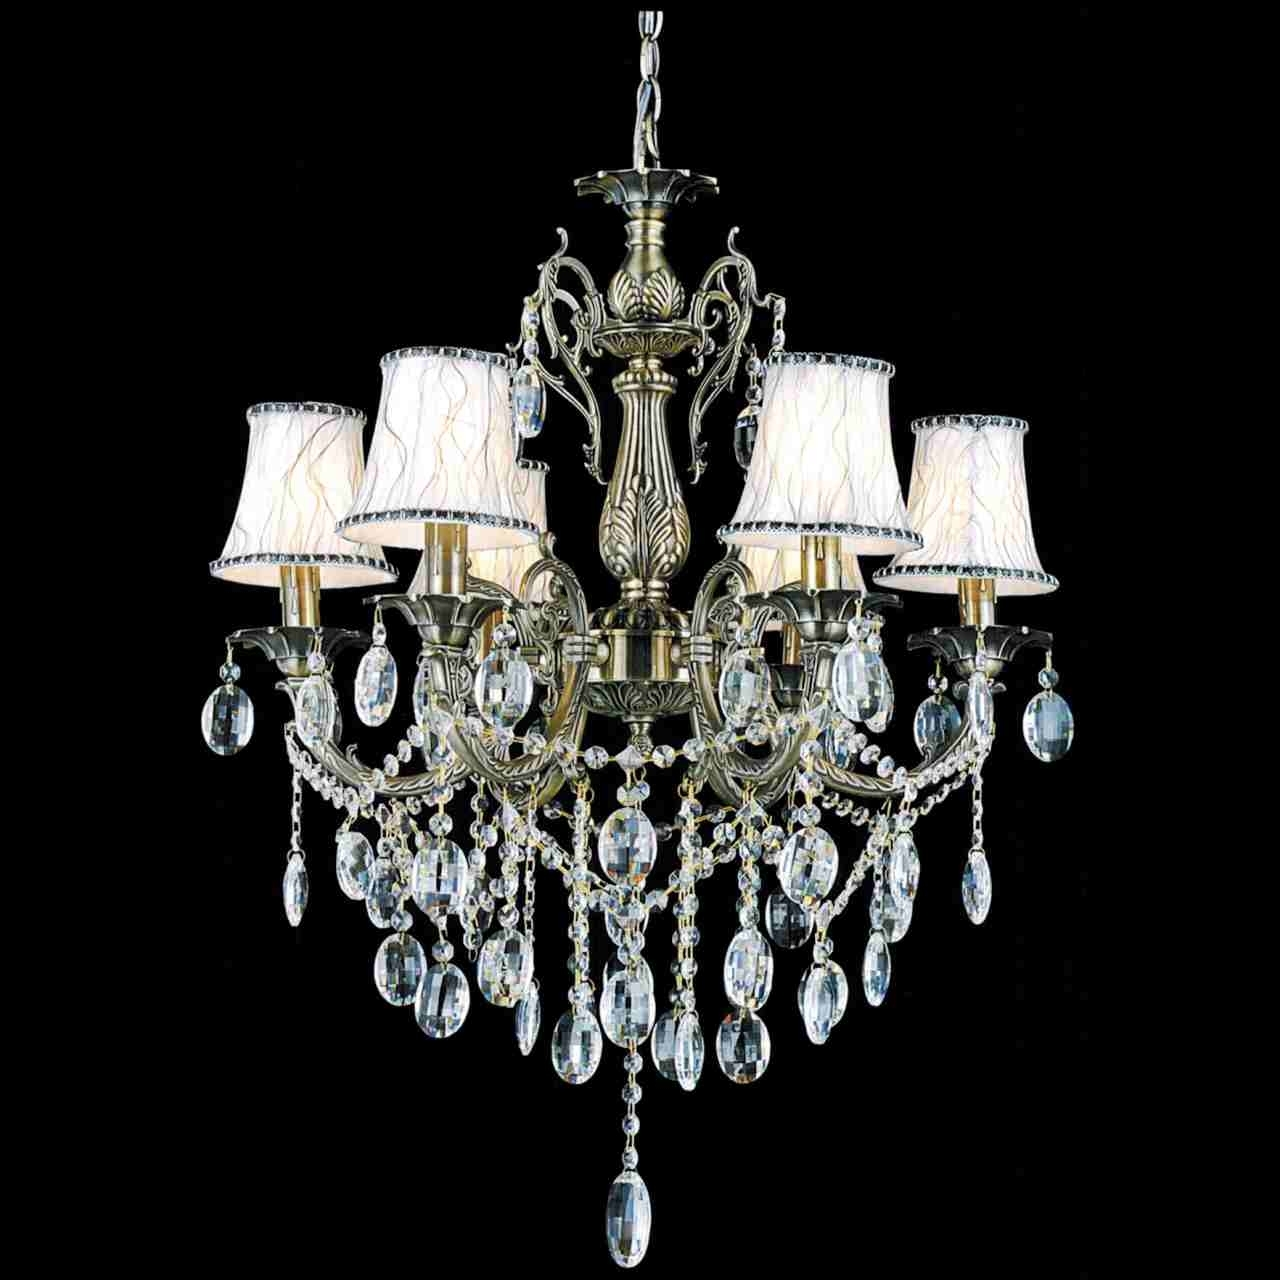 Crystal And Brass Chandelier Throughout Popular Brizzo Lighting Stores (View 15 of 20)